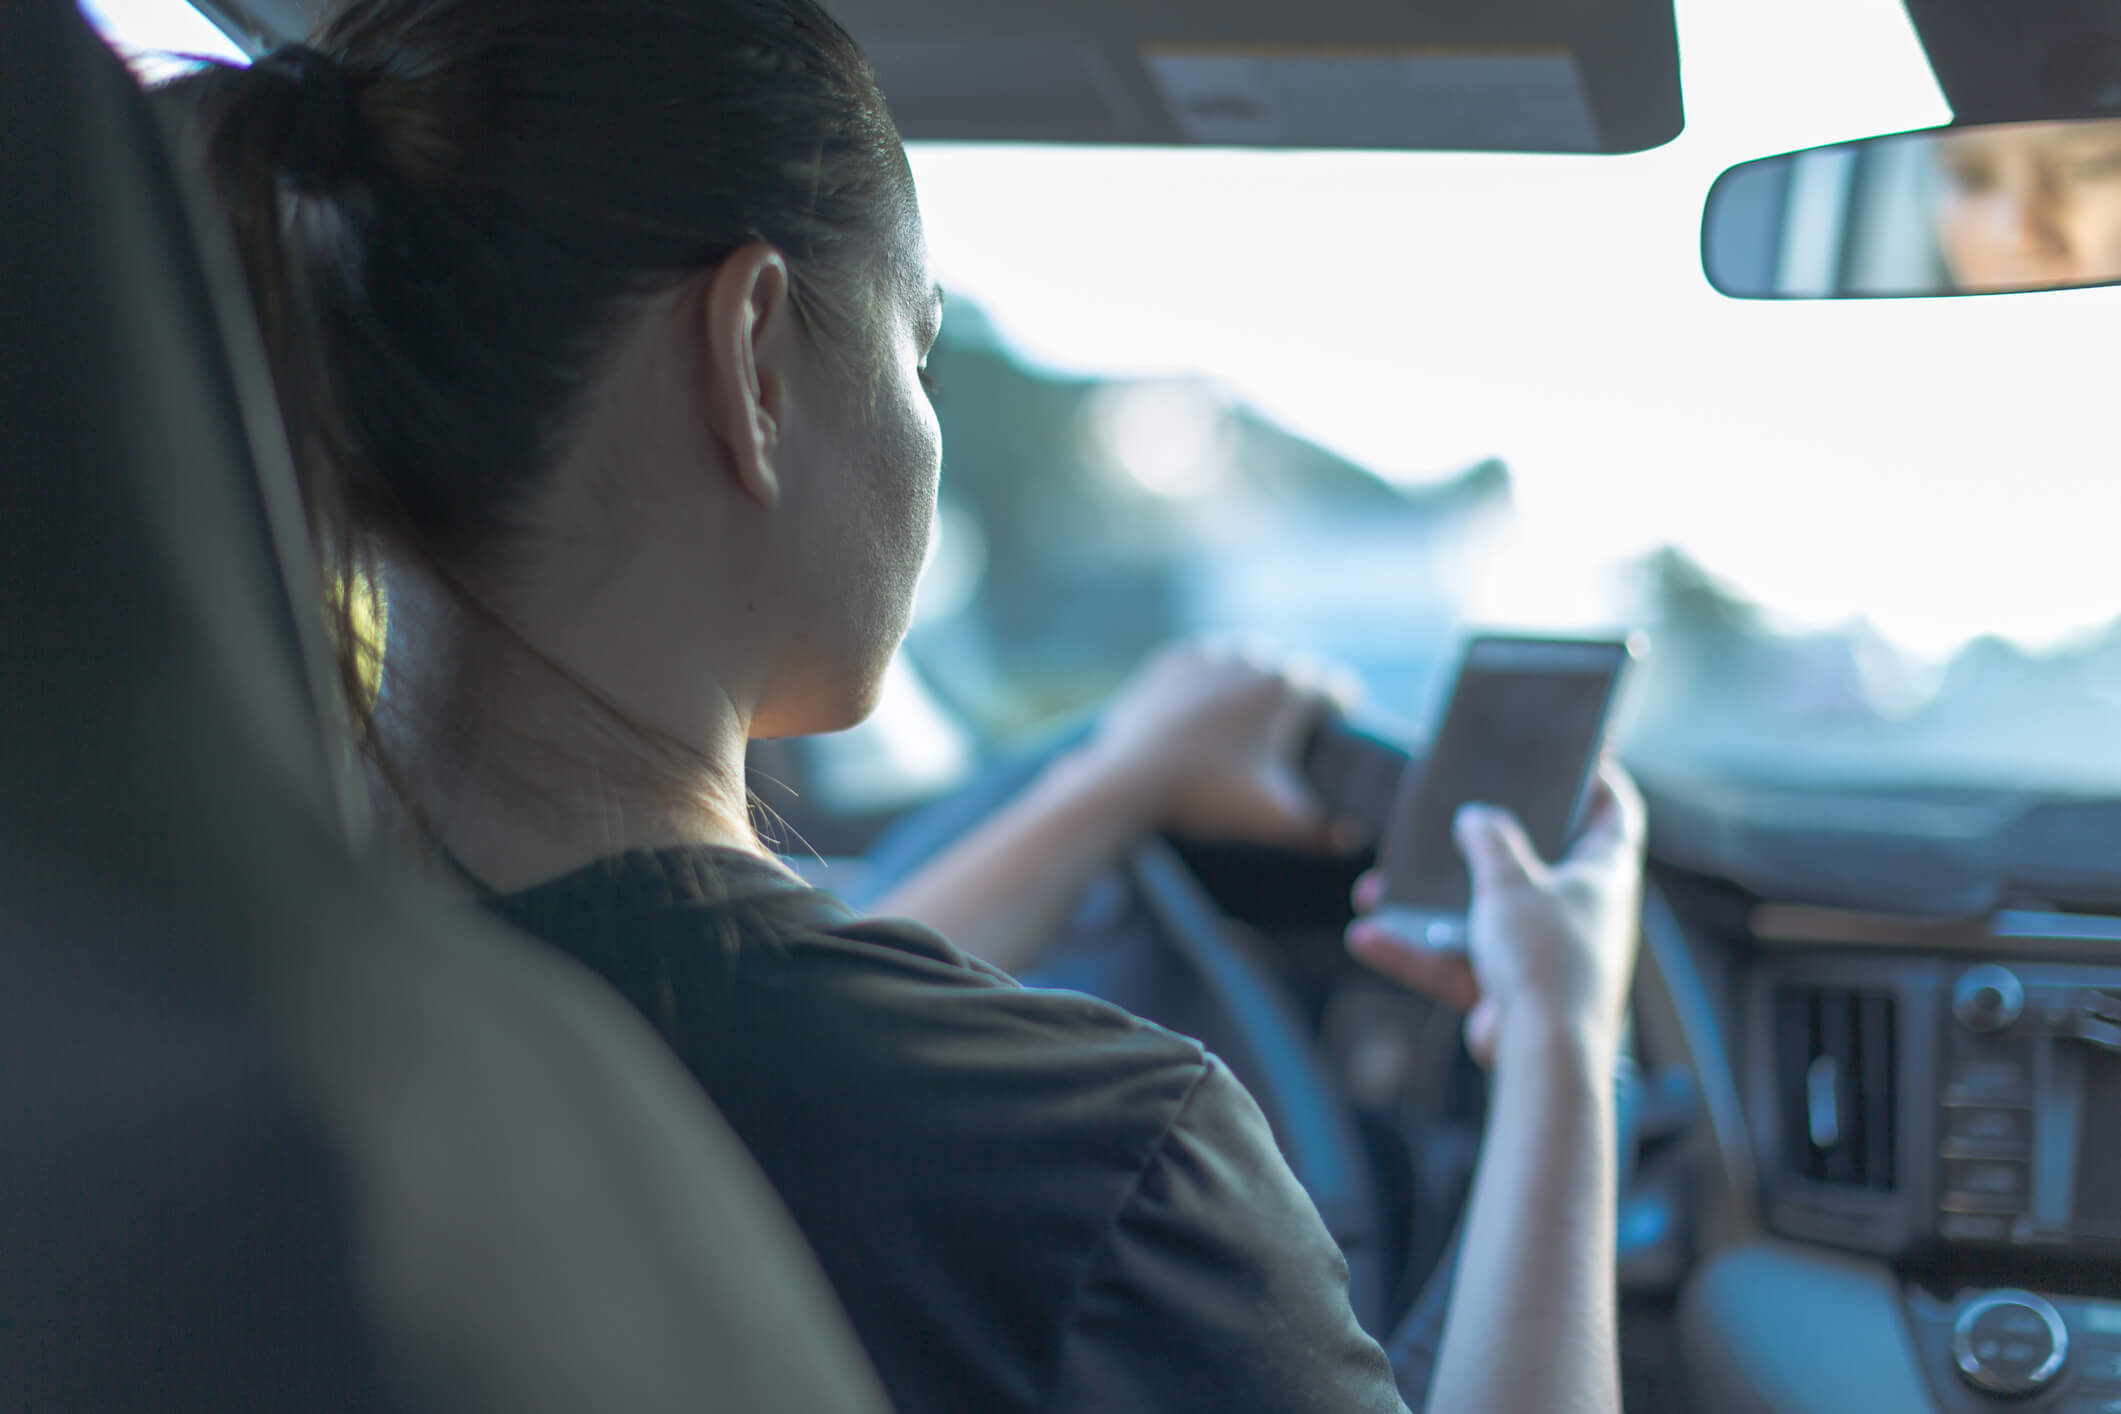 My.Attorney discusses Florida's new distracted driving laws that are supposed to prevent texting while driving.